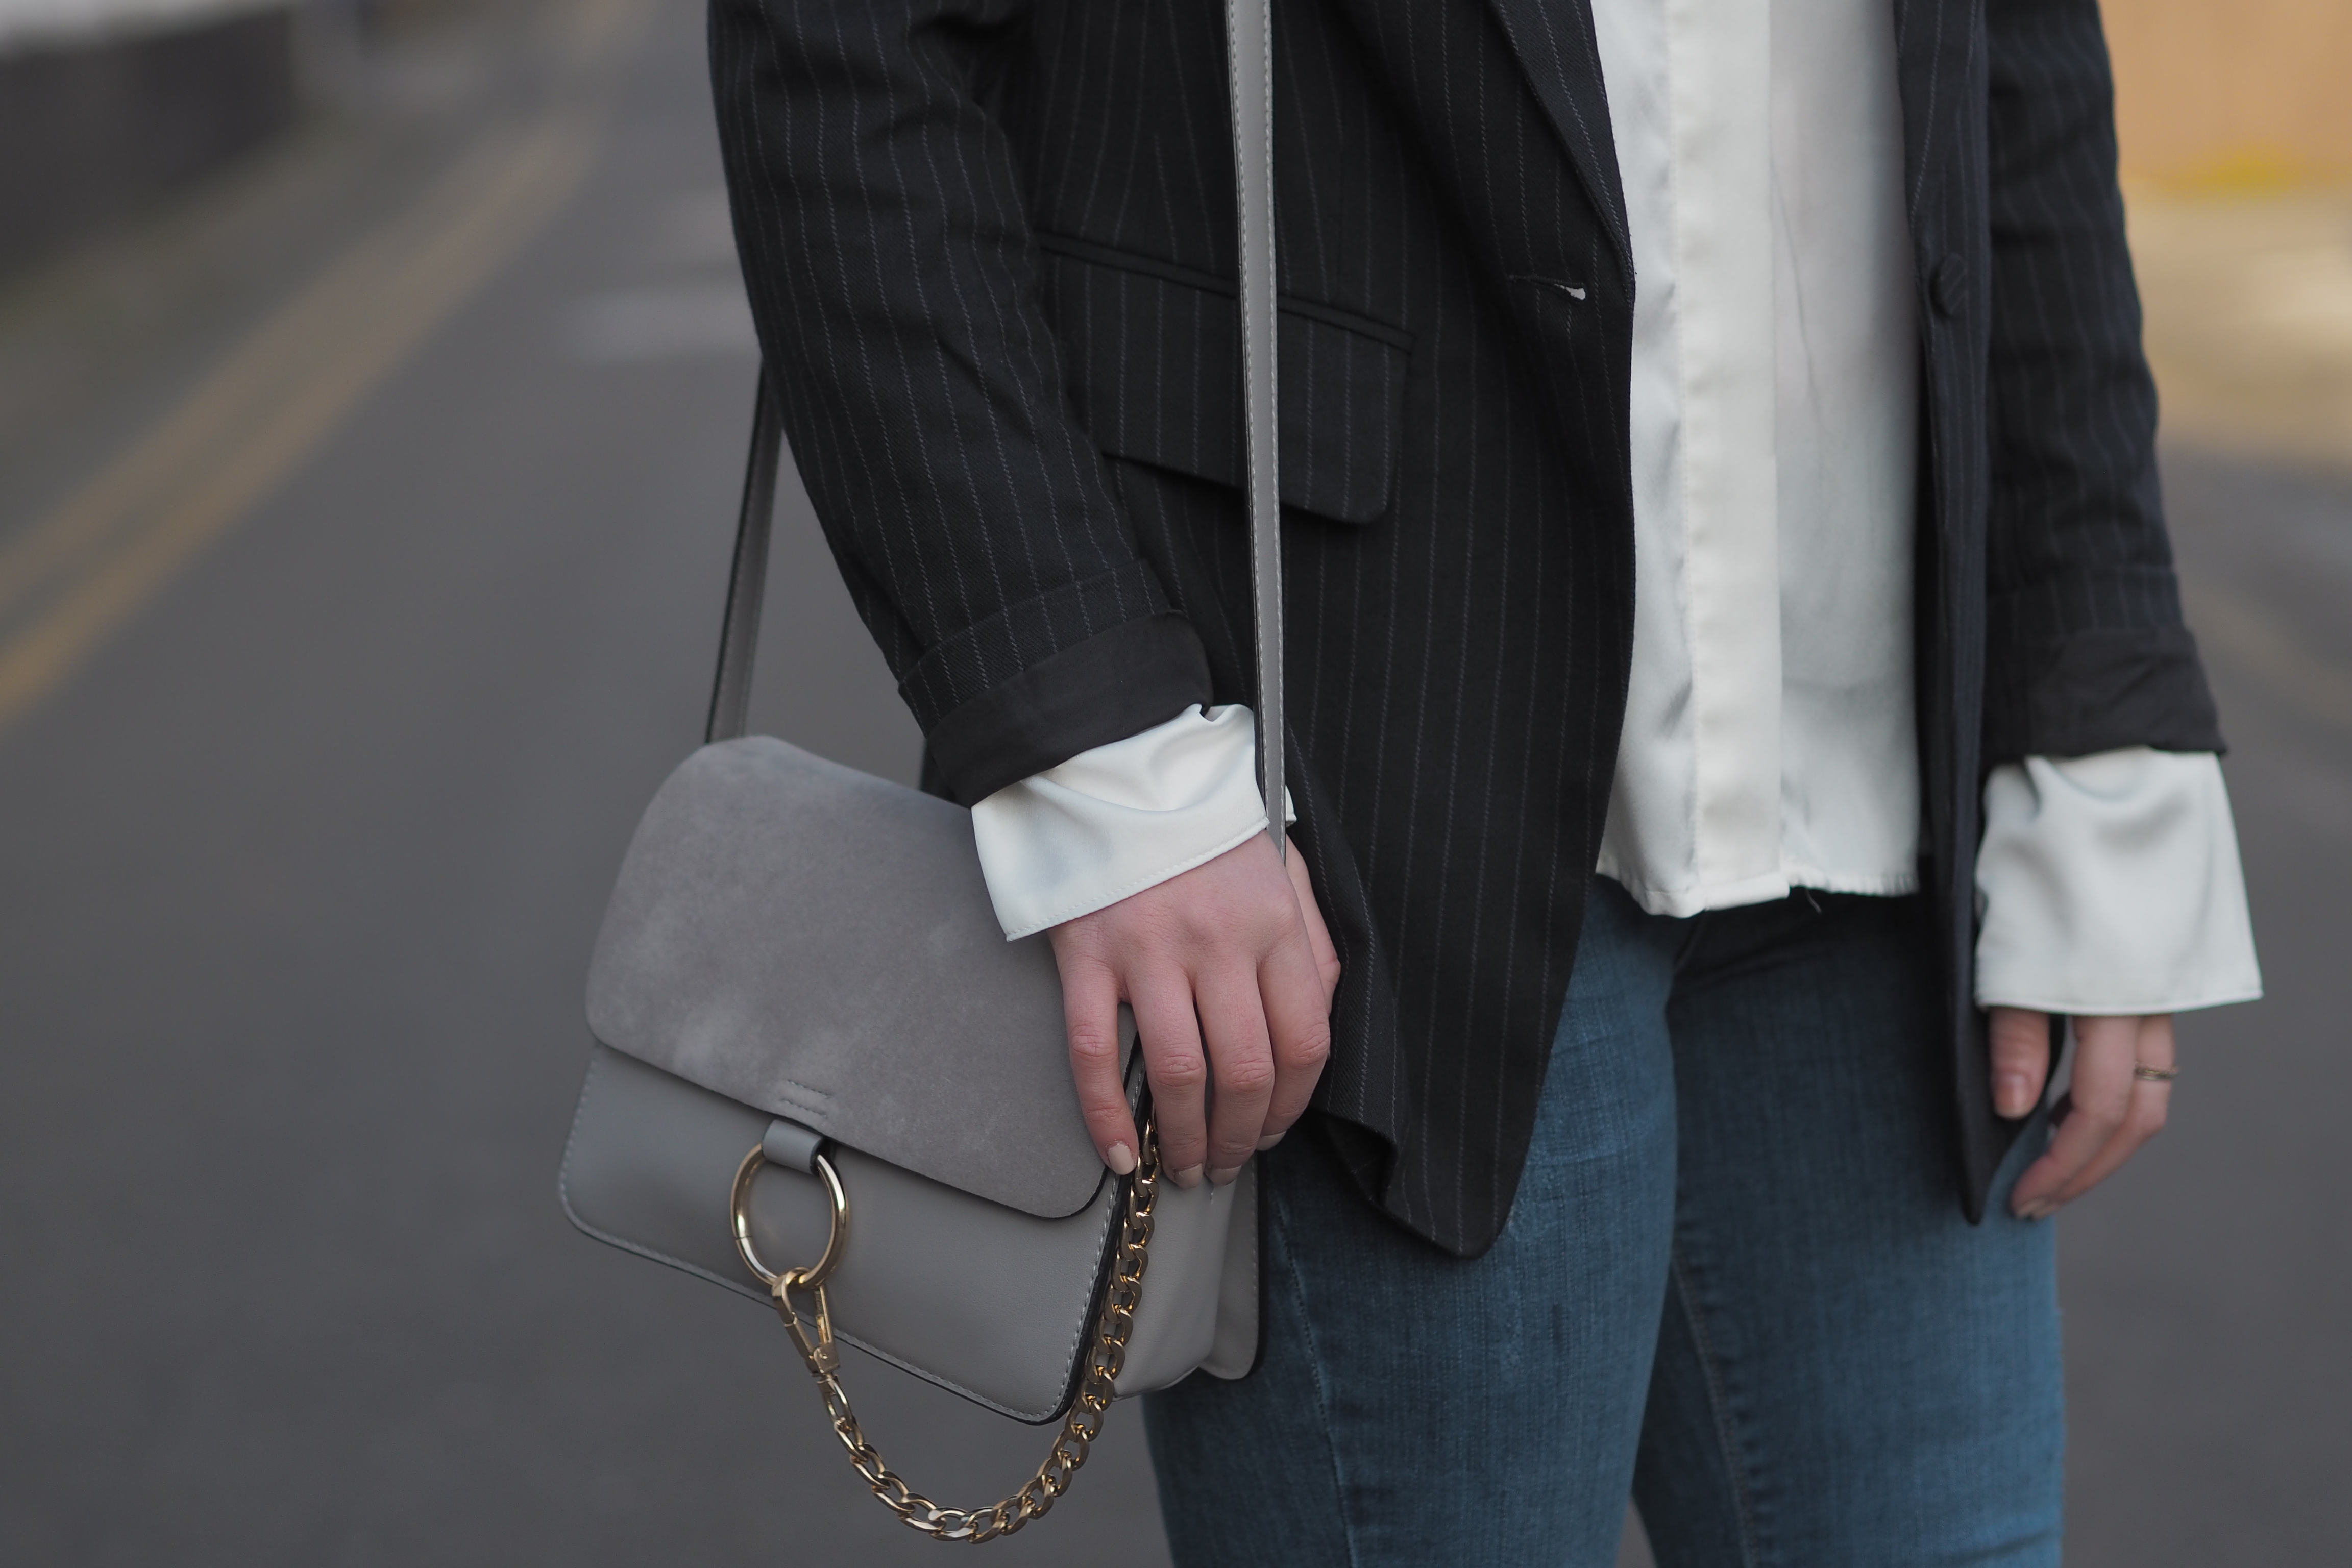 H&M pinstripe blazer satin white blouse Zara and River Island blue jeans and Mango stiletto heels